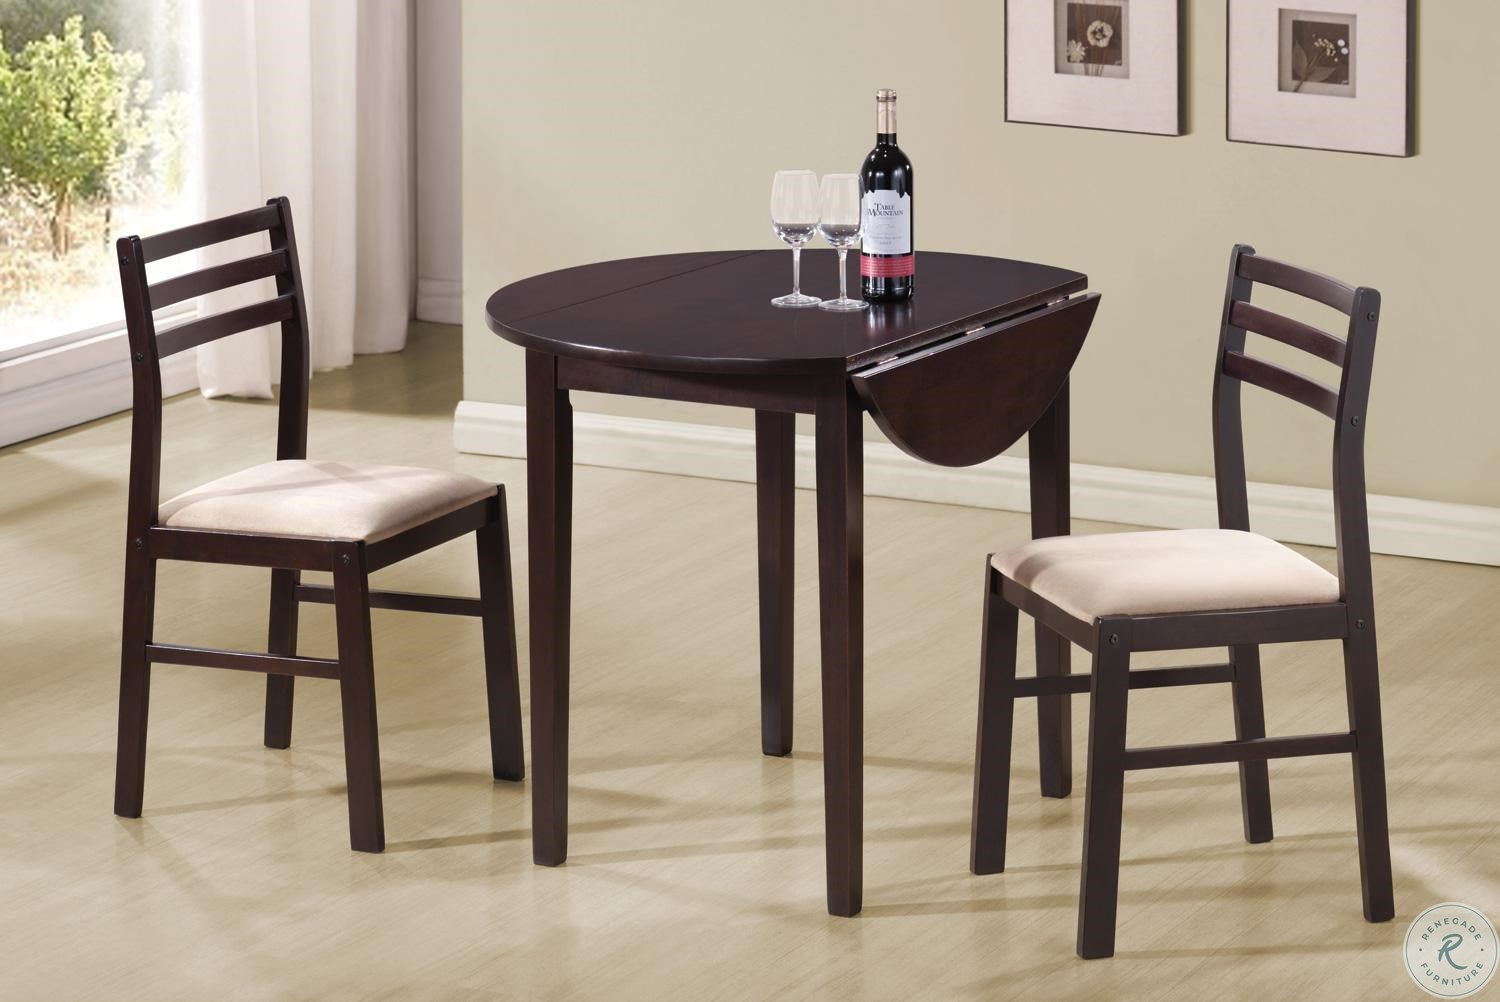 3 Piece Round Dining Table Set 130005 For Newest Ligon 3 Piece Breakfast Nook Dining Sets (Photo 20 of 20)